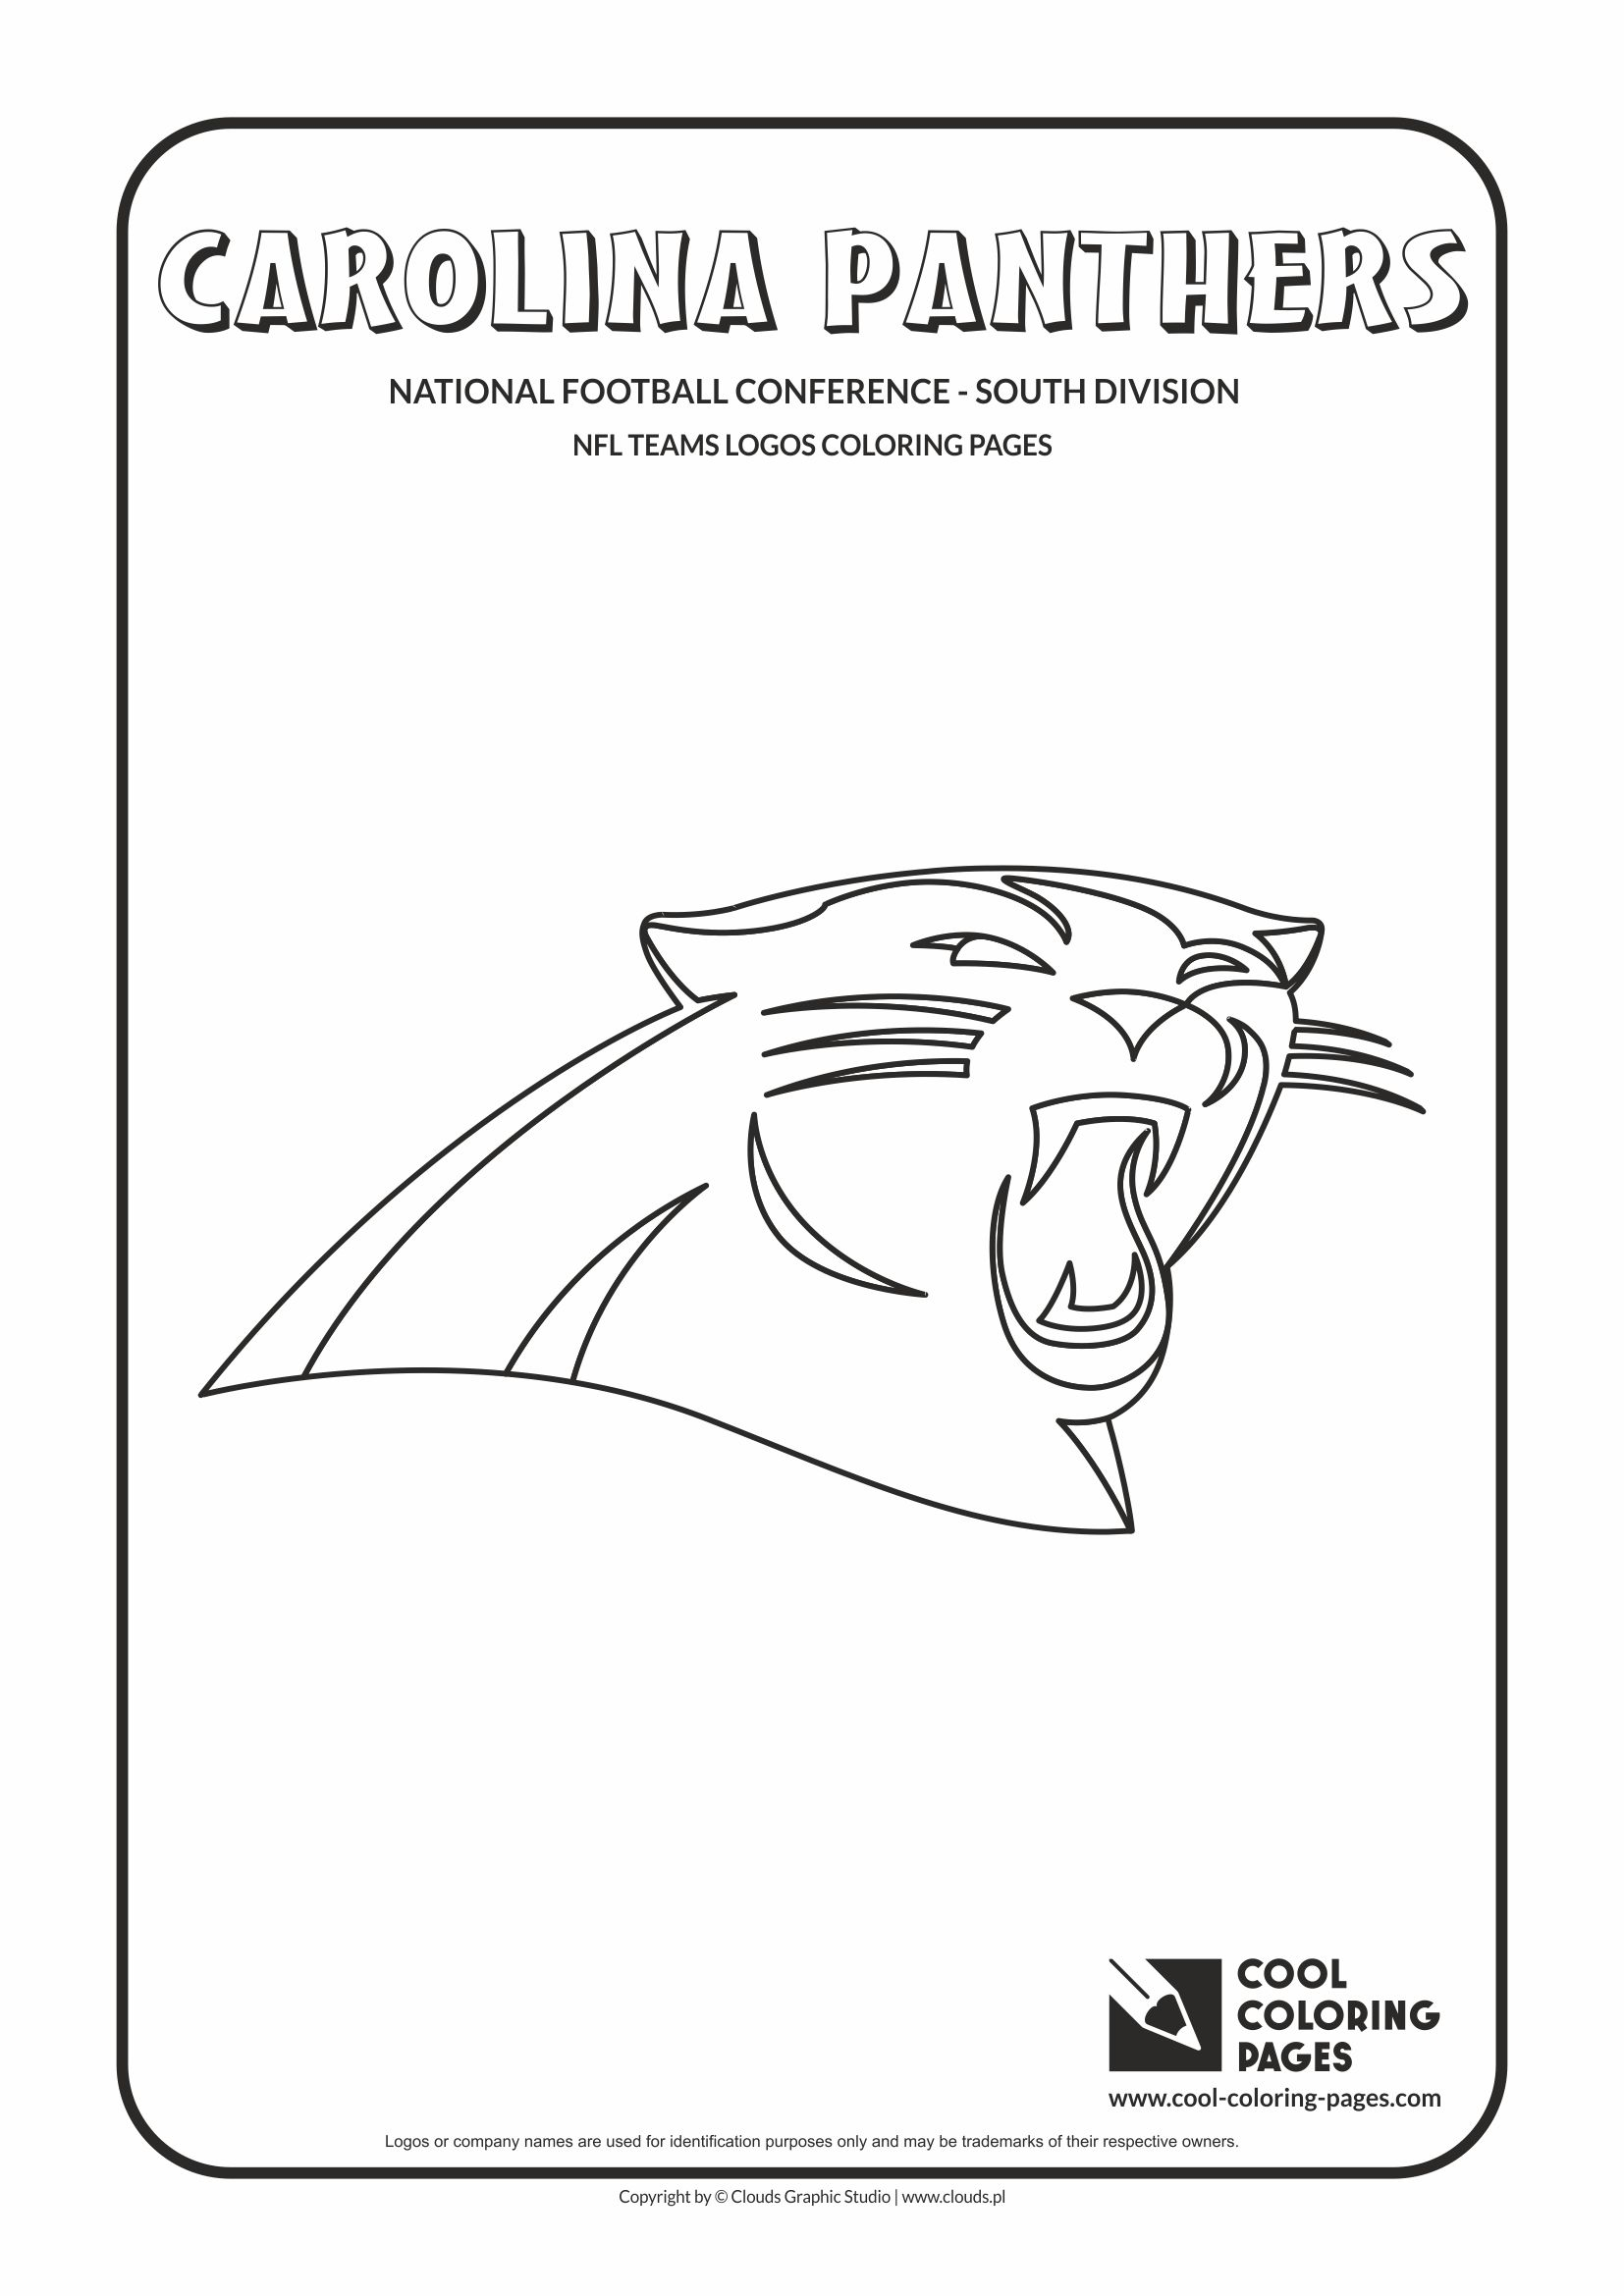 Cool Coloring Pages - NFL American Football Clubs Logos - National Football Conference - East Division / Carolina Panthers logo / Coloring page with Carolina Panthers logo